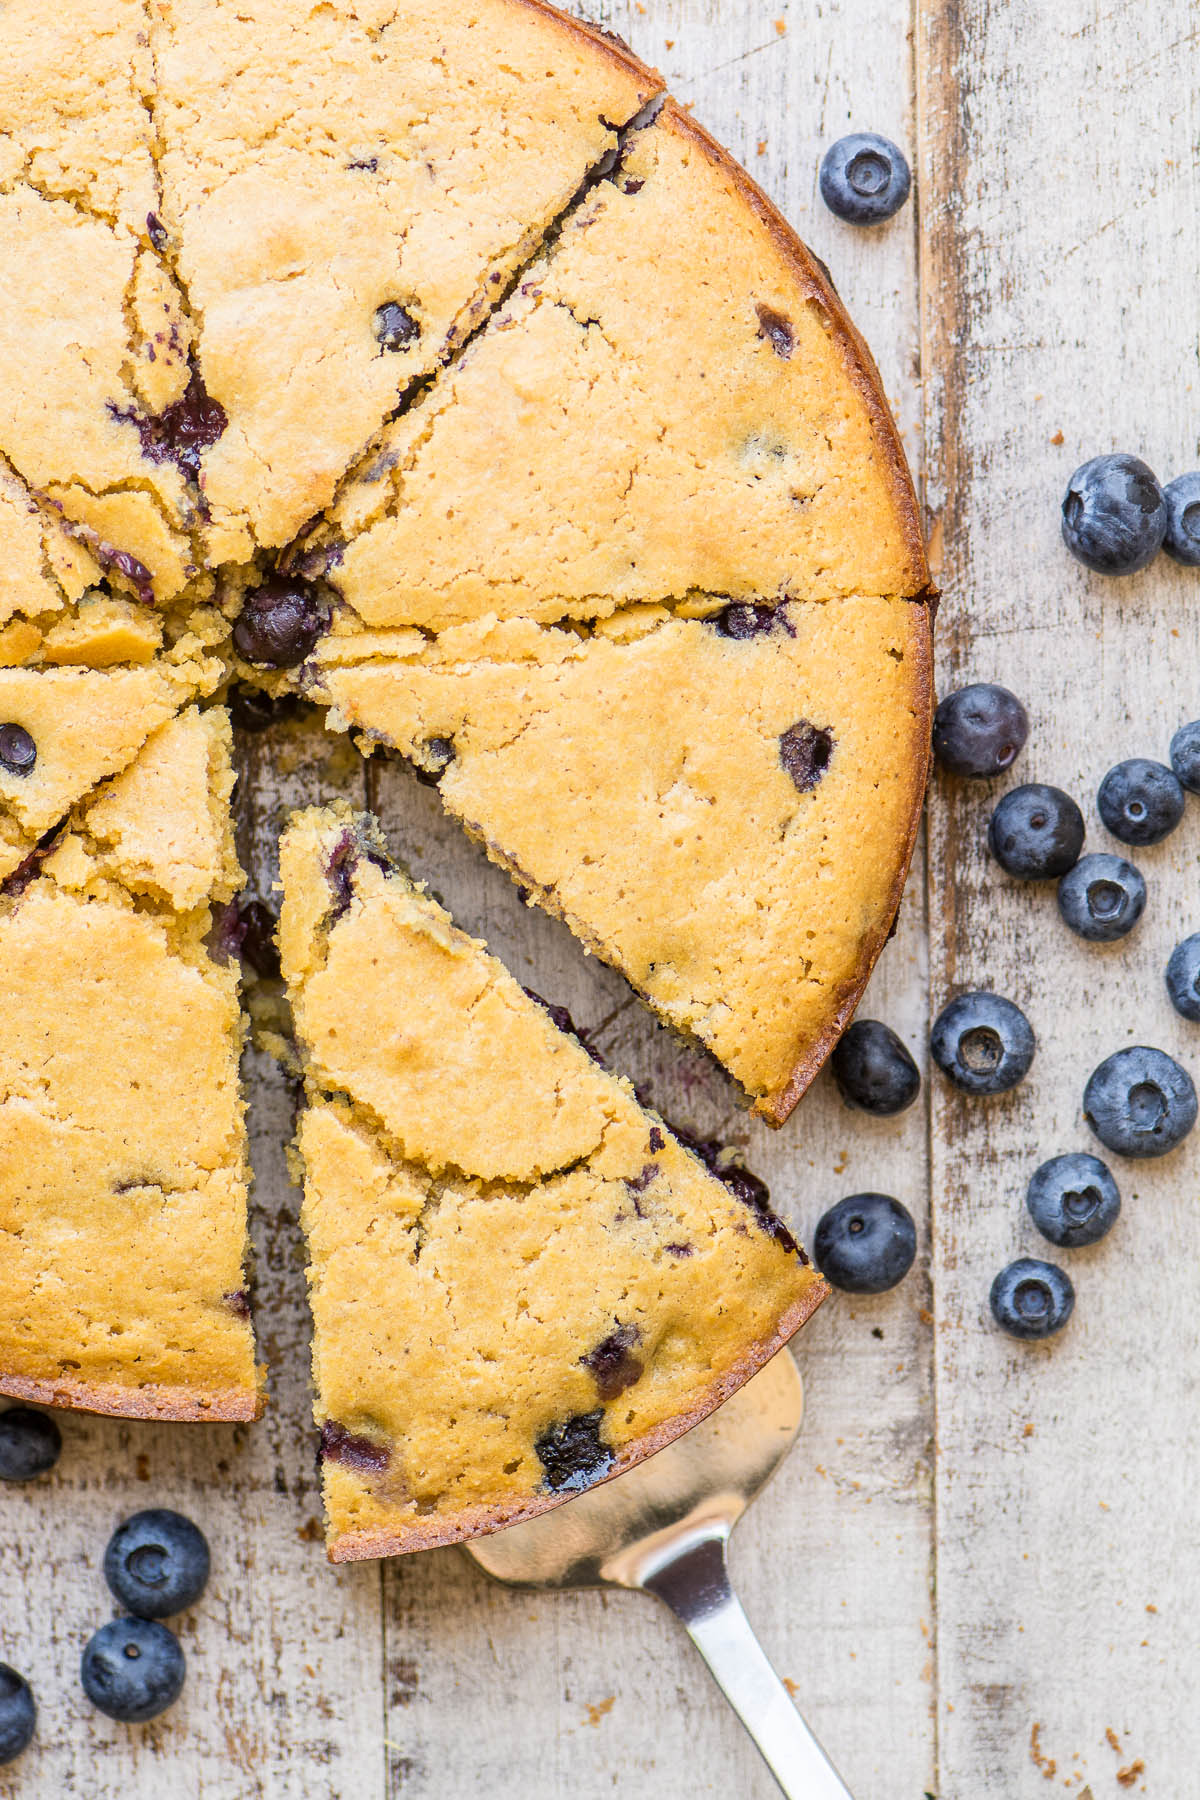 Blueberry cornbread on a wooden table with fresh blueberries